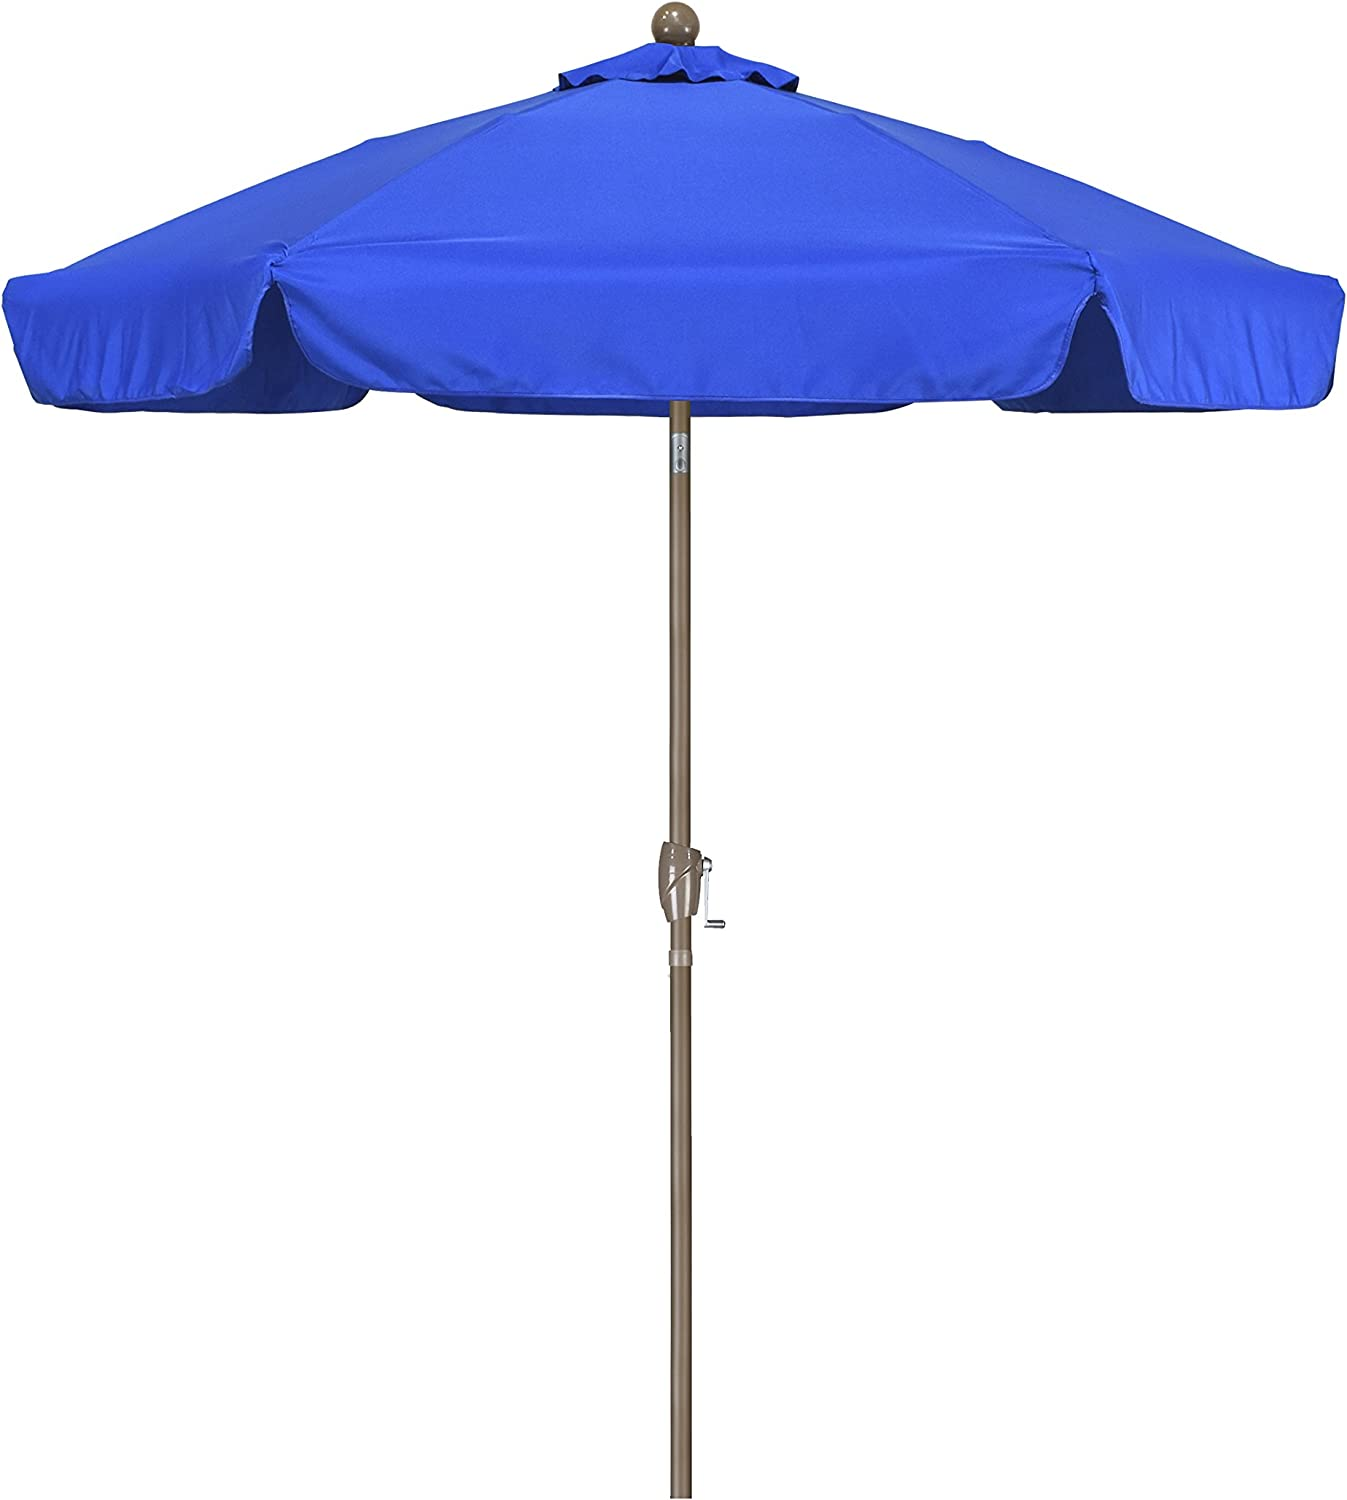 California Umbrella 7.5 Round Aluminum Pole Fiberglass Rib Umbrella, Crank Open, Push Button 3-Way Tilt, Champagne Pole, Pacific Blue